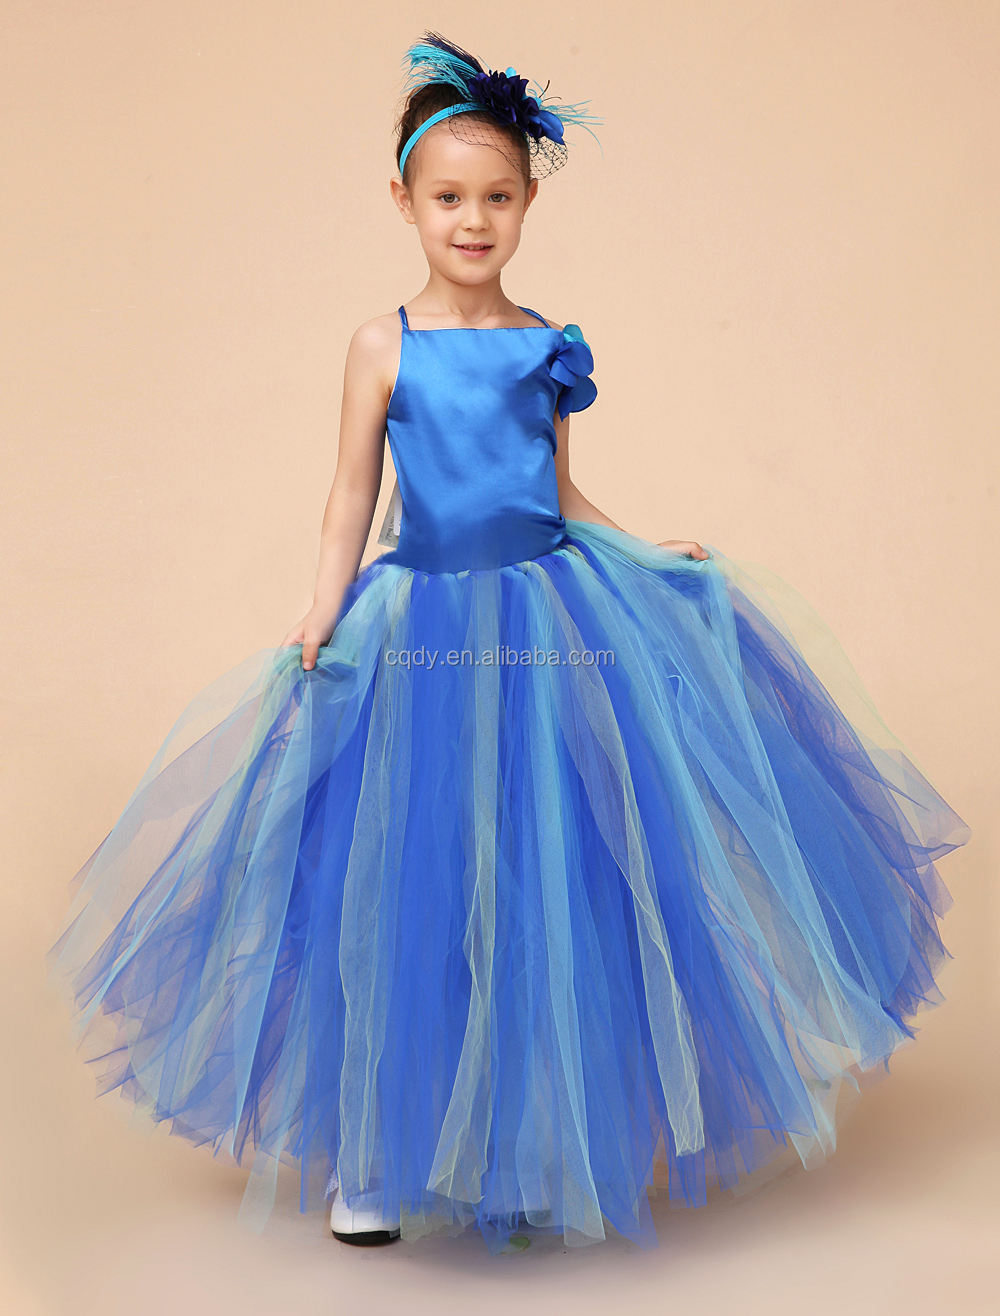 Fashion Flower Sky Blue Dress For Baby Kids Child Bout Ique Clothes Party Wedding